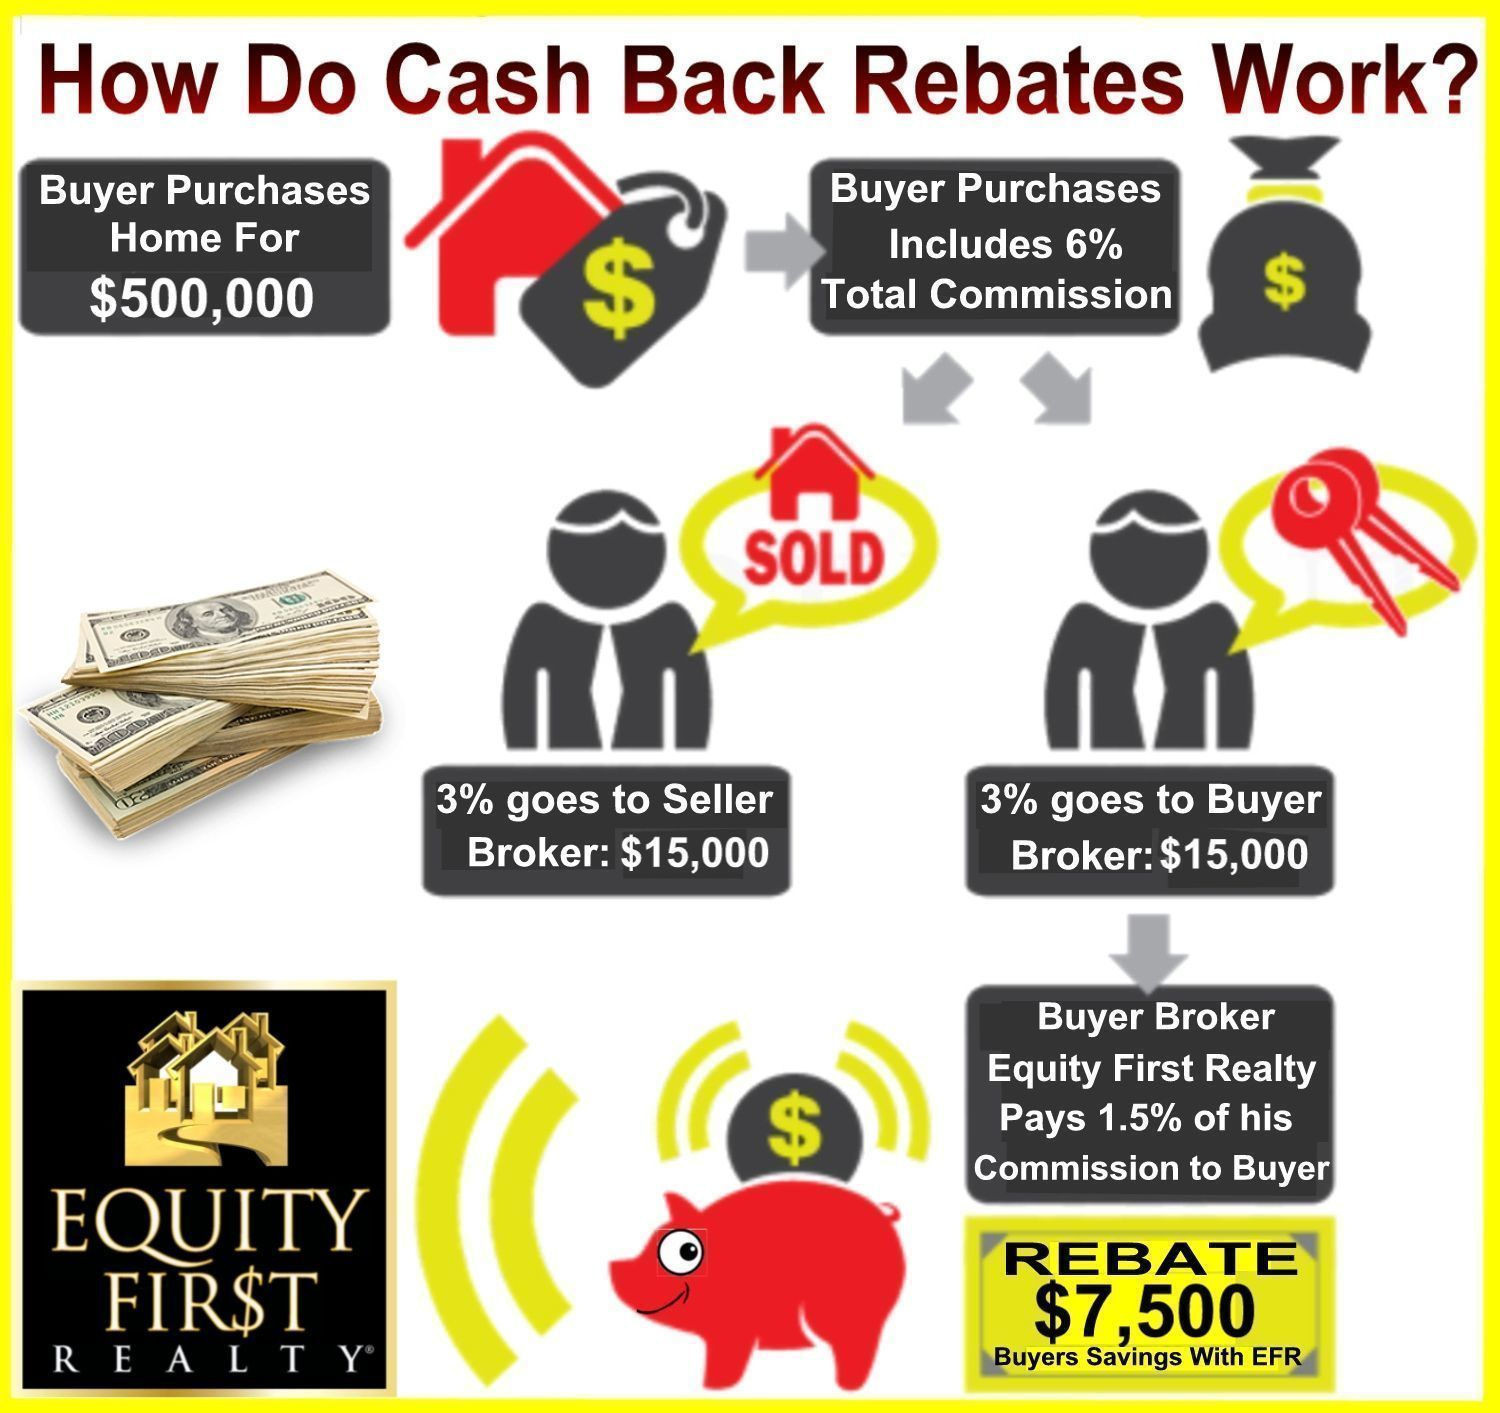 Cash Back Buyer Rewards Rebate Program